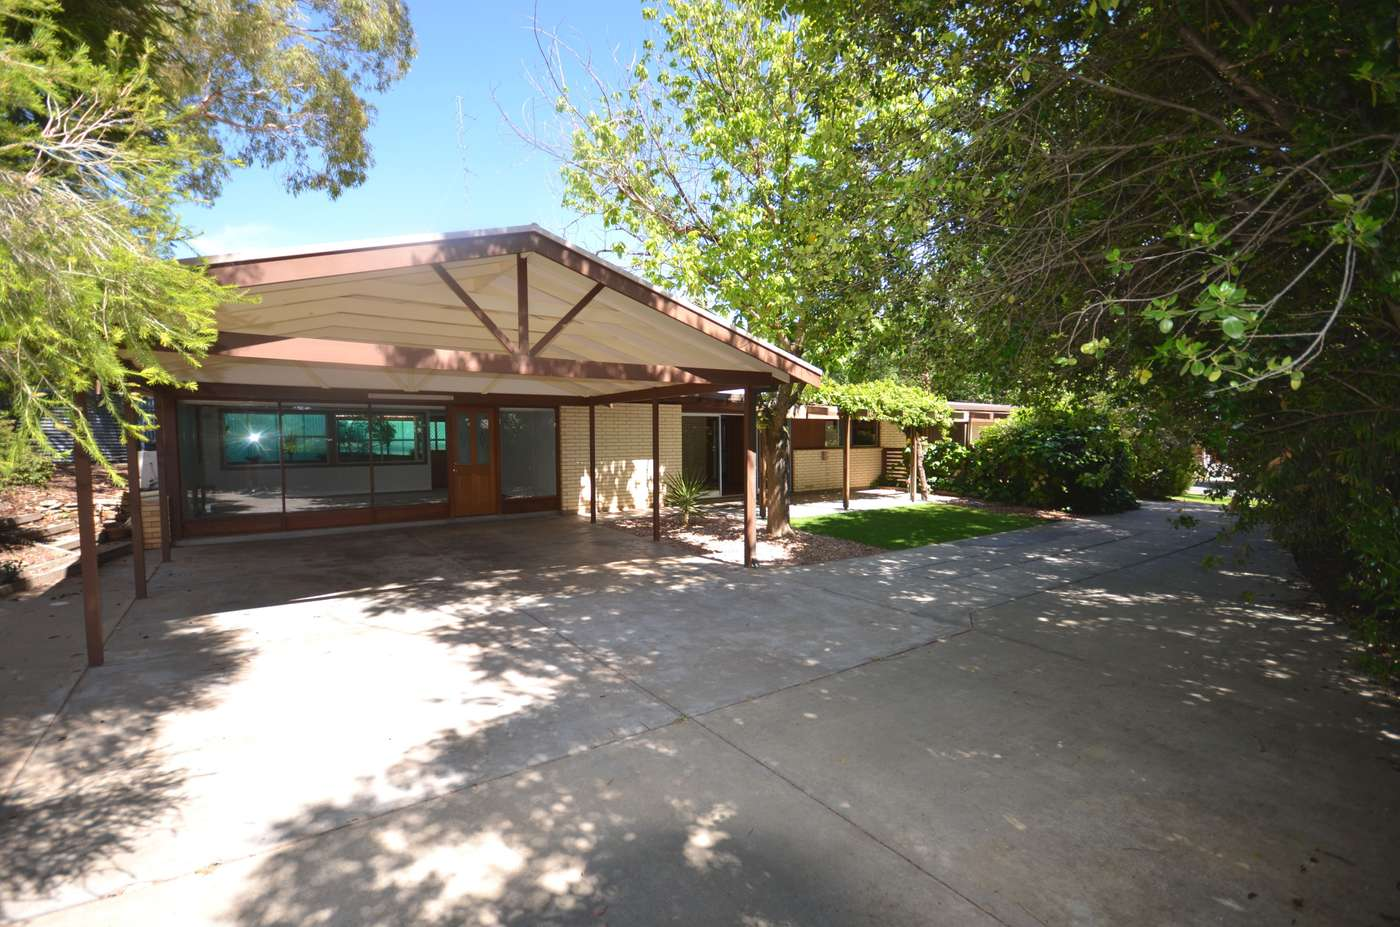 Main view of Homely house listing, 14 Daly Street, Clare, SA 5453